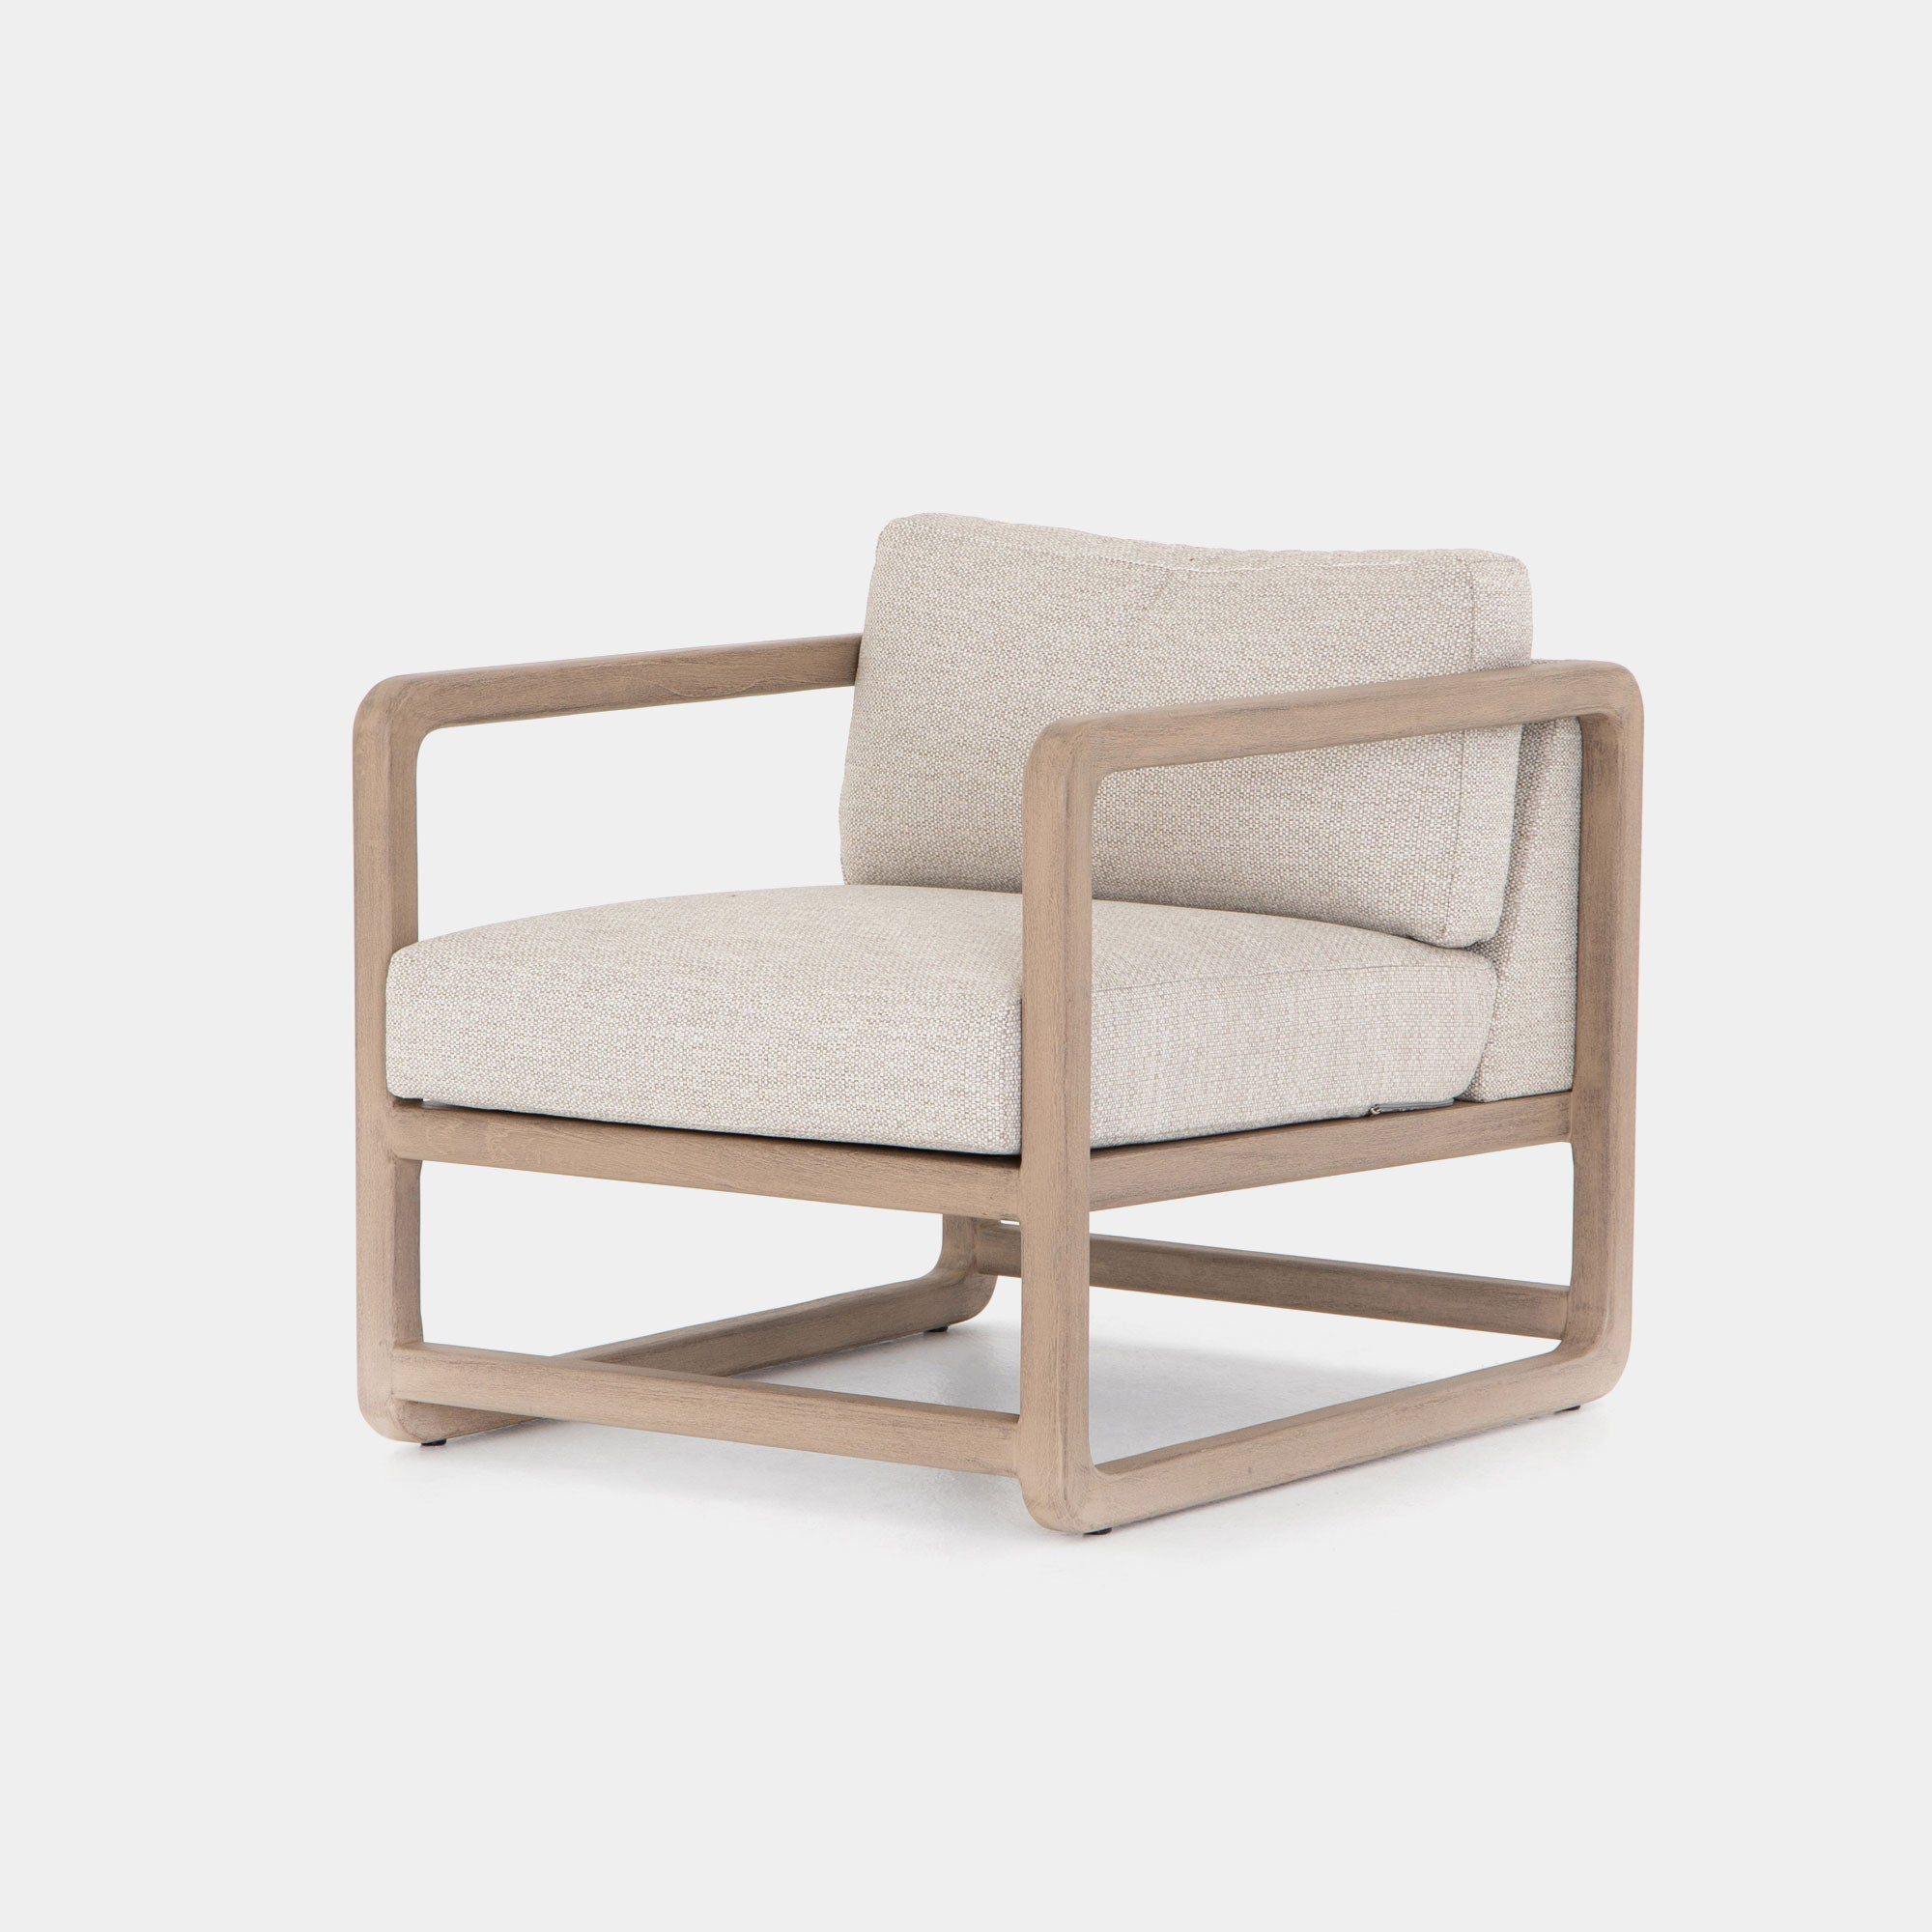 Mantell Outdoor Chair - Outdoor Furniture - Lounge Chairs – Shoppe Amber Interiors